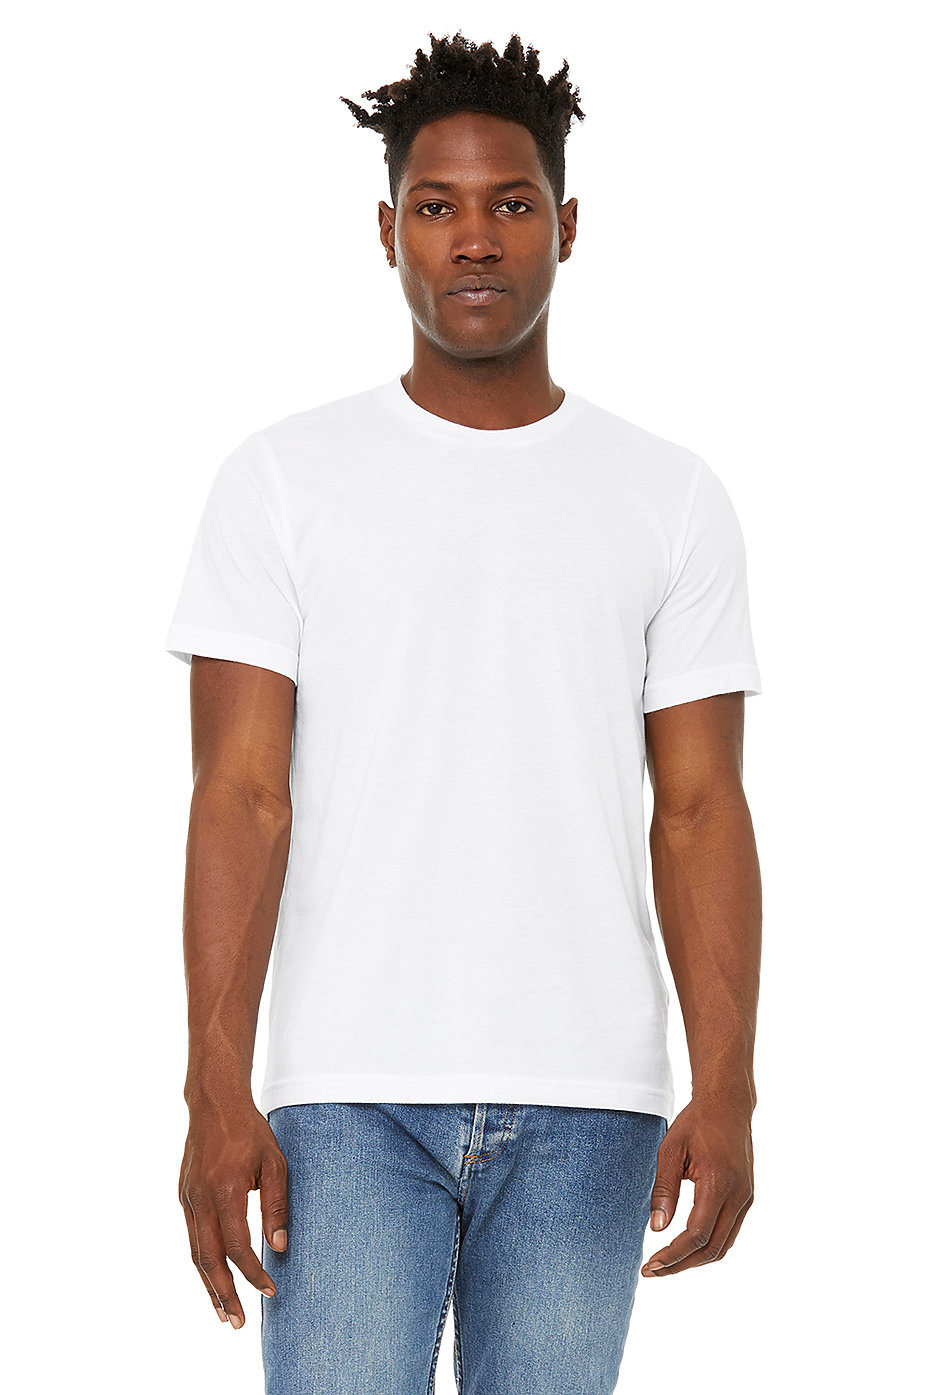 d0c01a731318c Heathered Shirt   Mens Wholesale Clothing   Heather T Shirts   Blank ...